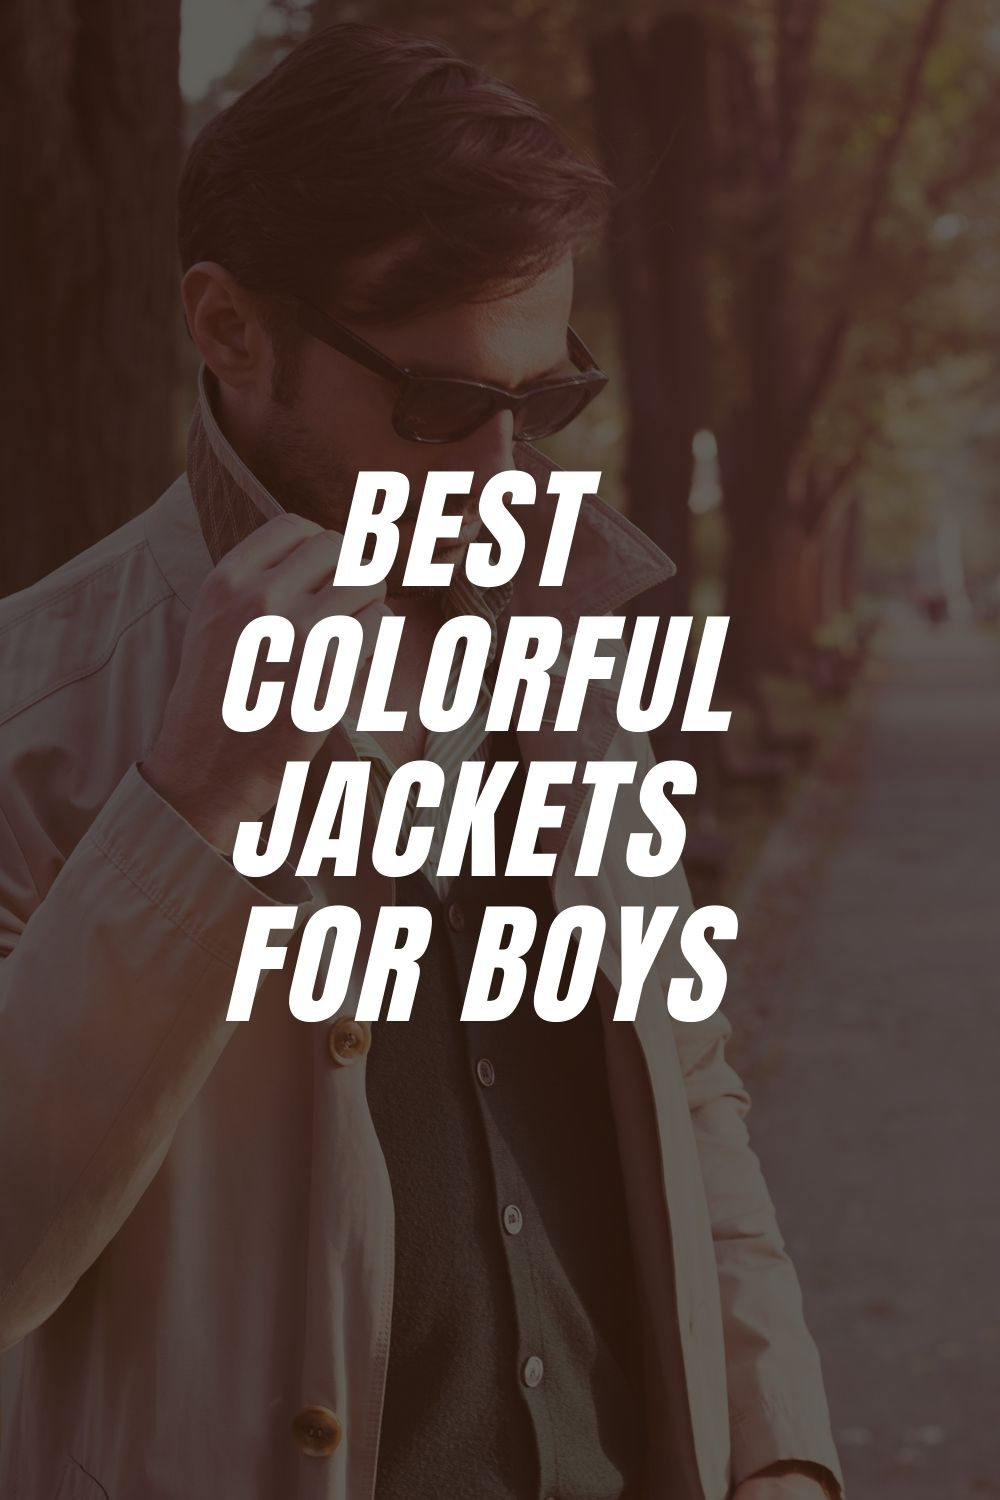 Best Colorful Jackets for Boys